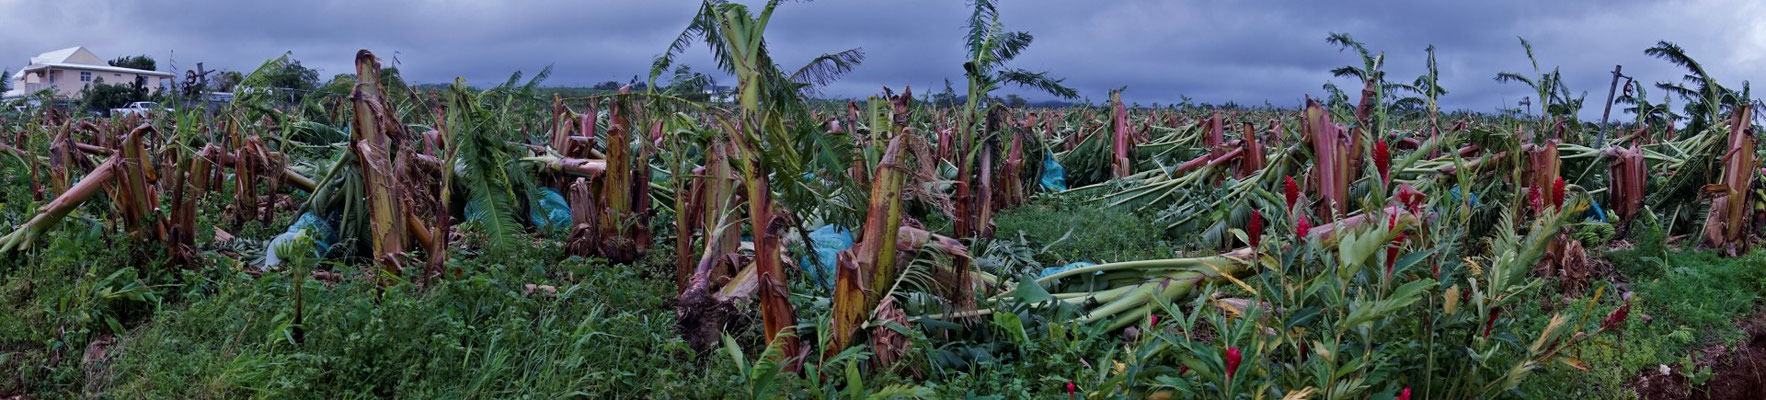 Banana fields after Maria Hurricane in 2017 (copyright: Didier-Laurent Aubert – DAAF Guadeloupe)